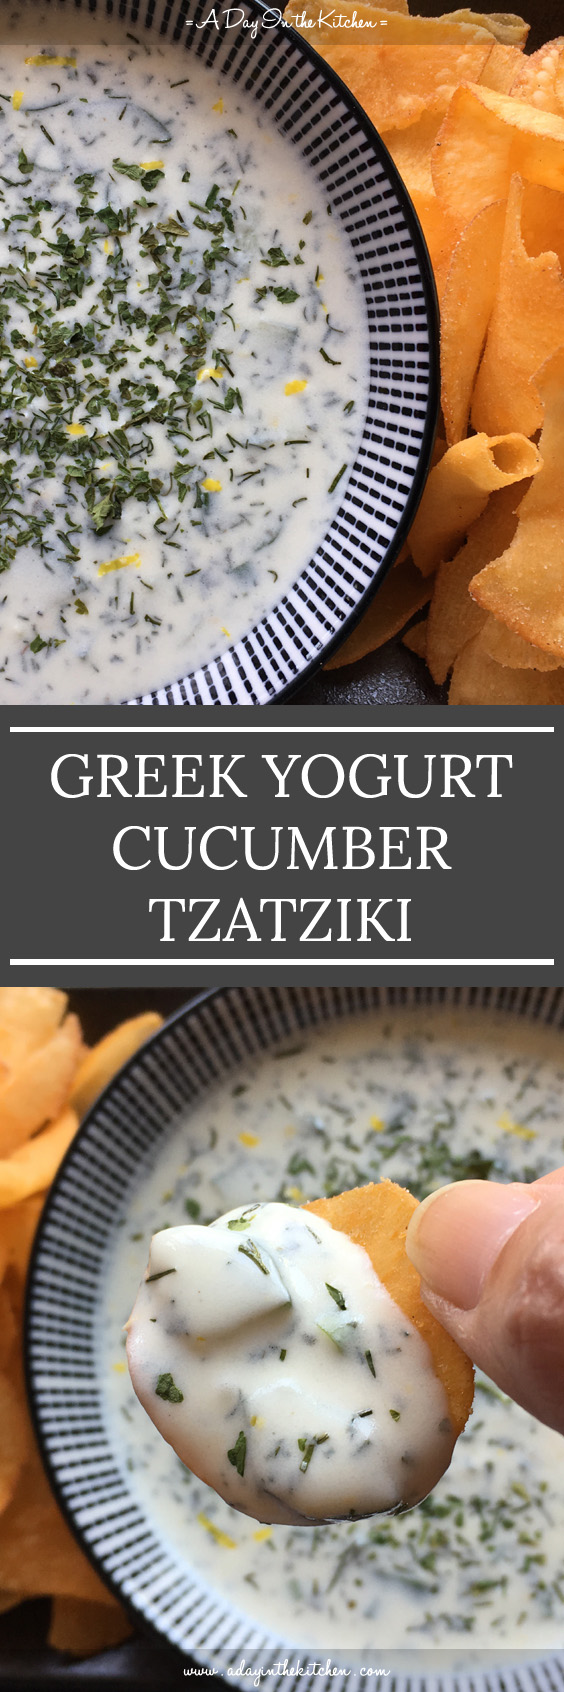 Creamy Cucumber Tzatziki you can whip up right in your own kitchen! You won't do store-bought again after you see how easy this is to make! #tzatziki #greekyogurt #cucumbertzatziki #glutenfree #dips